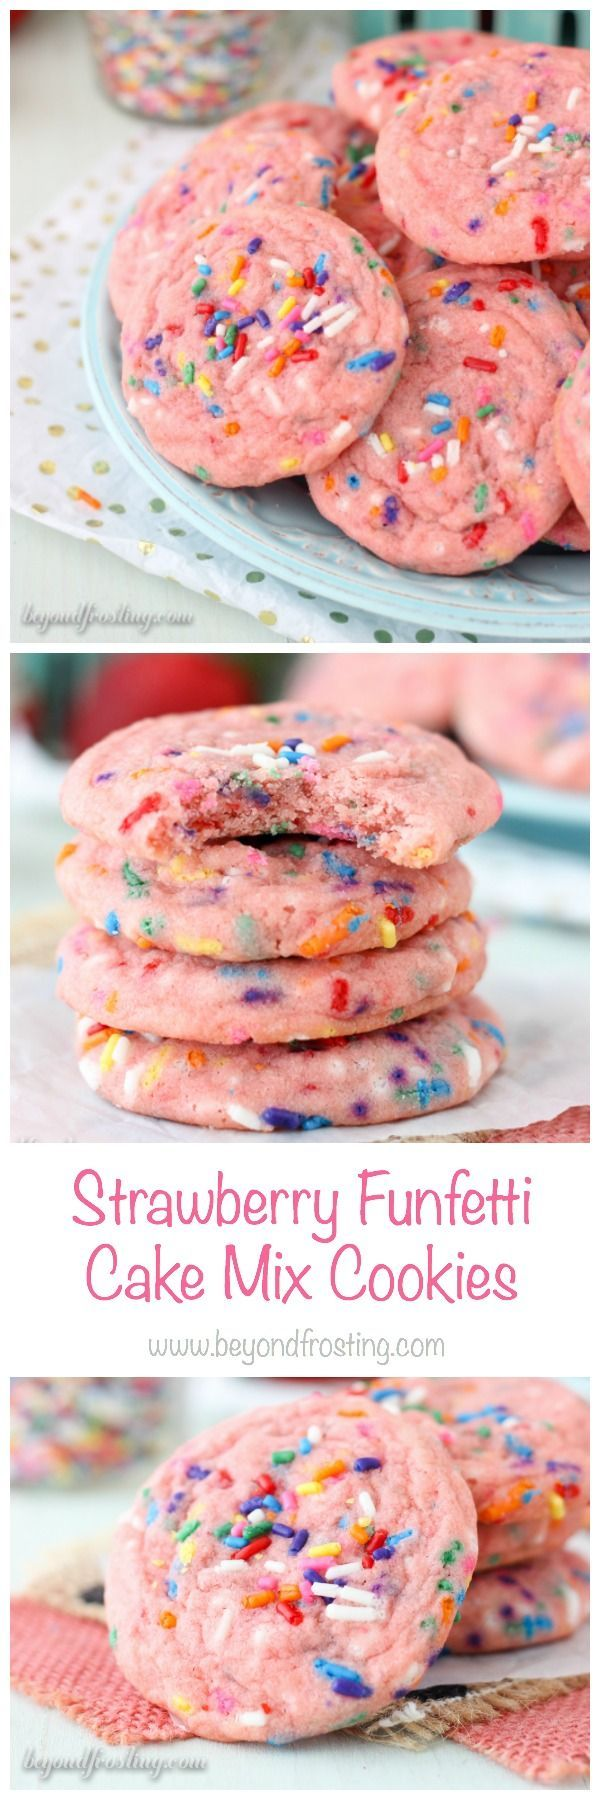 Take your funfetti cookies to the next level with the strawberry cake mix. These Strawberry Funfetti Cake Mix Cookies are so soft and chewy, they will be your new favorite cookie. (Pink Cake Icing)